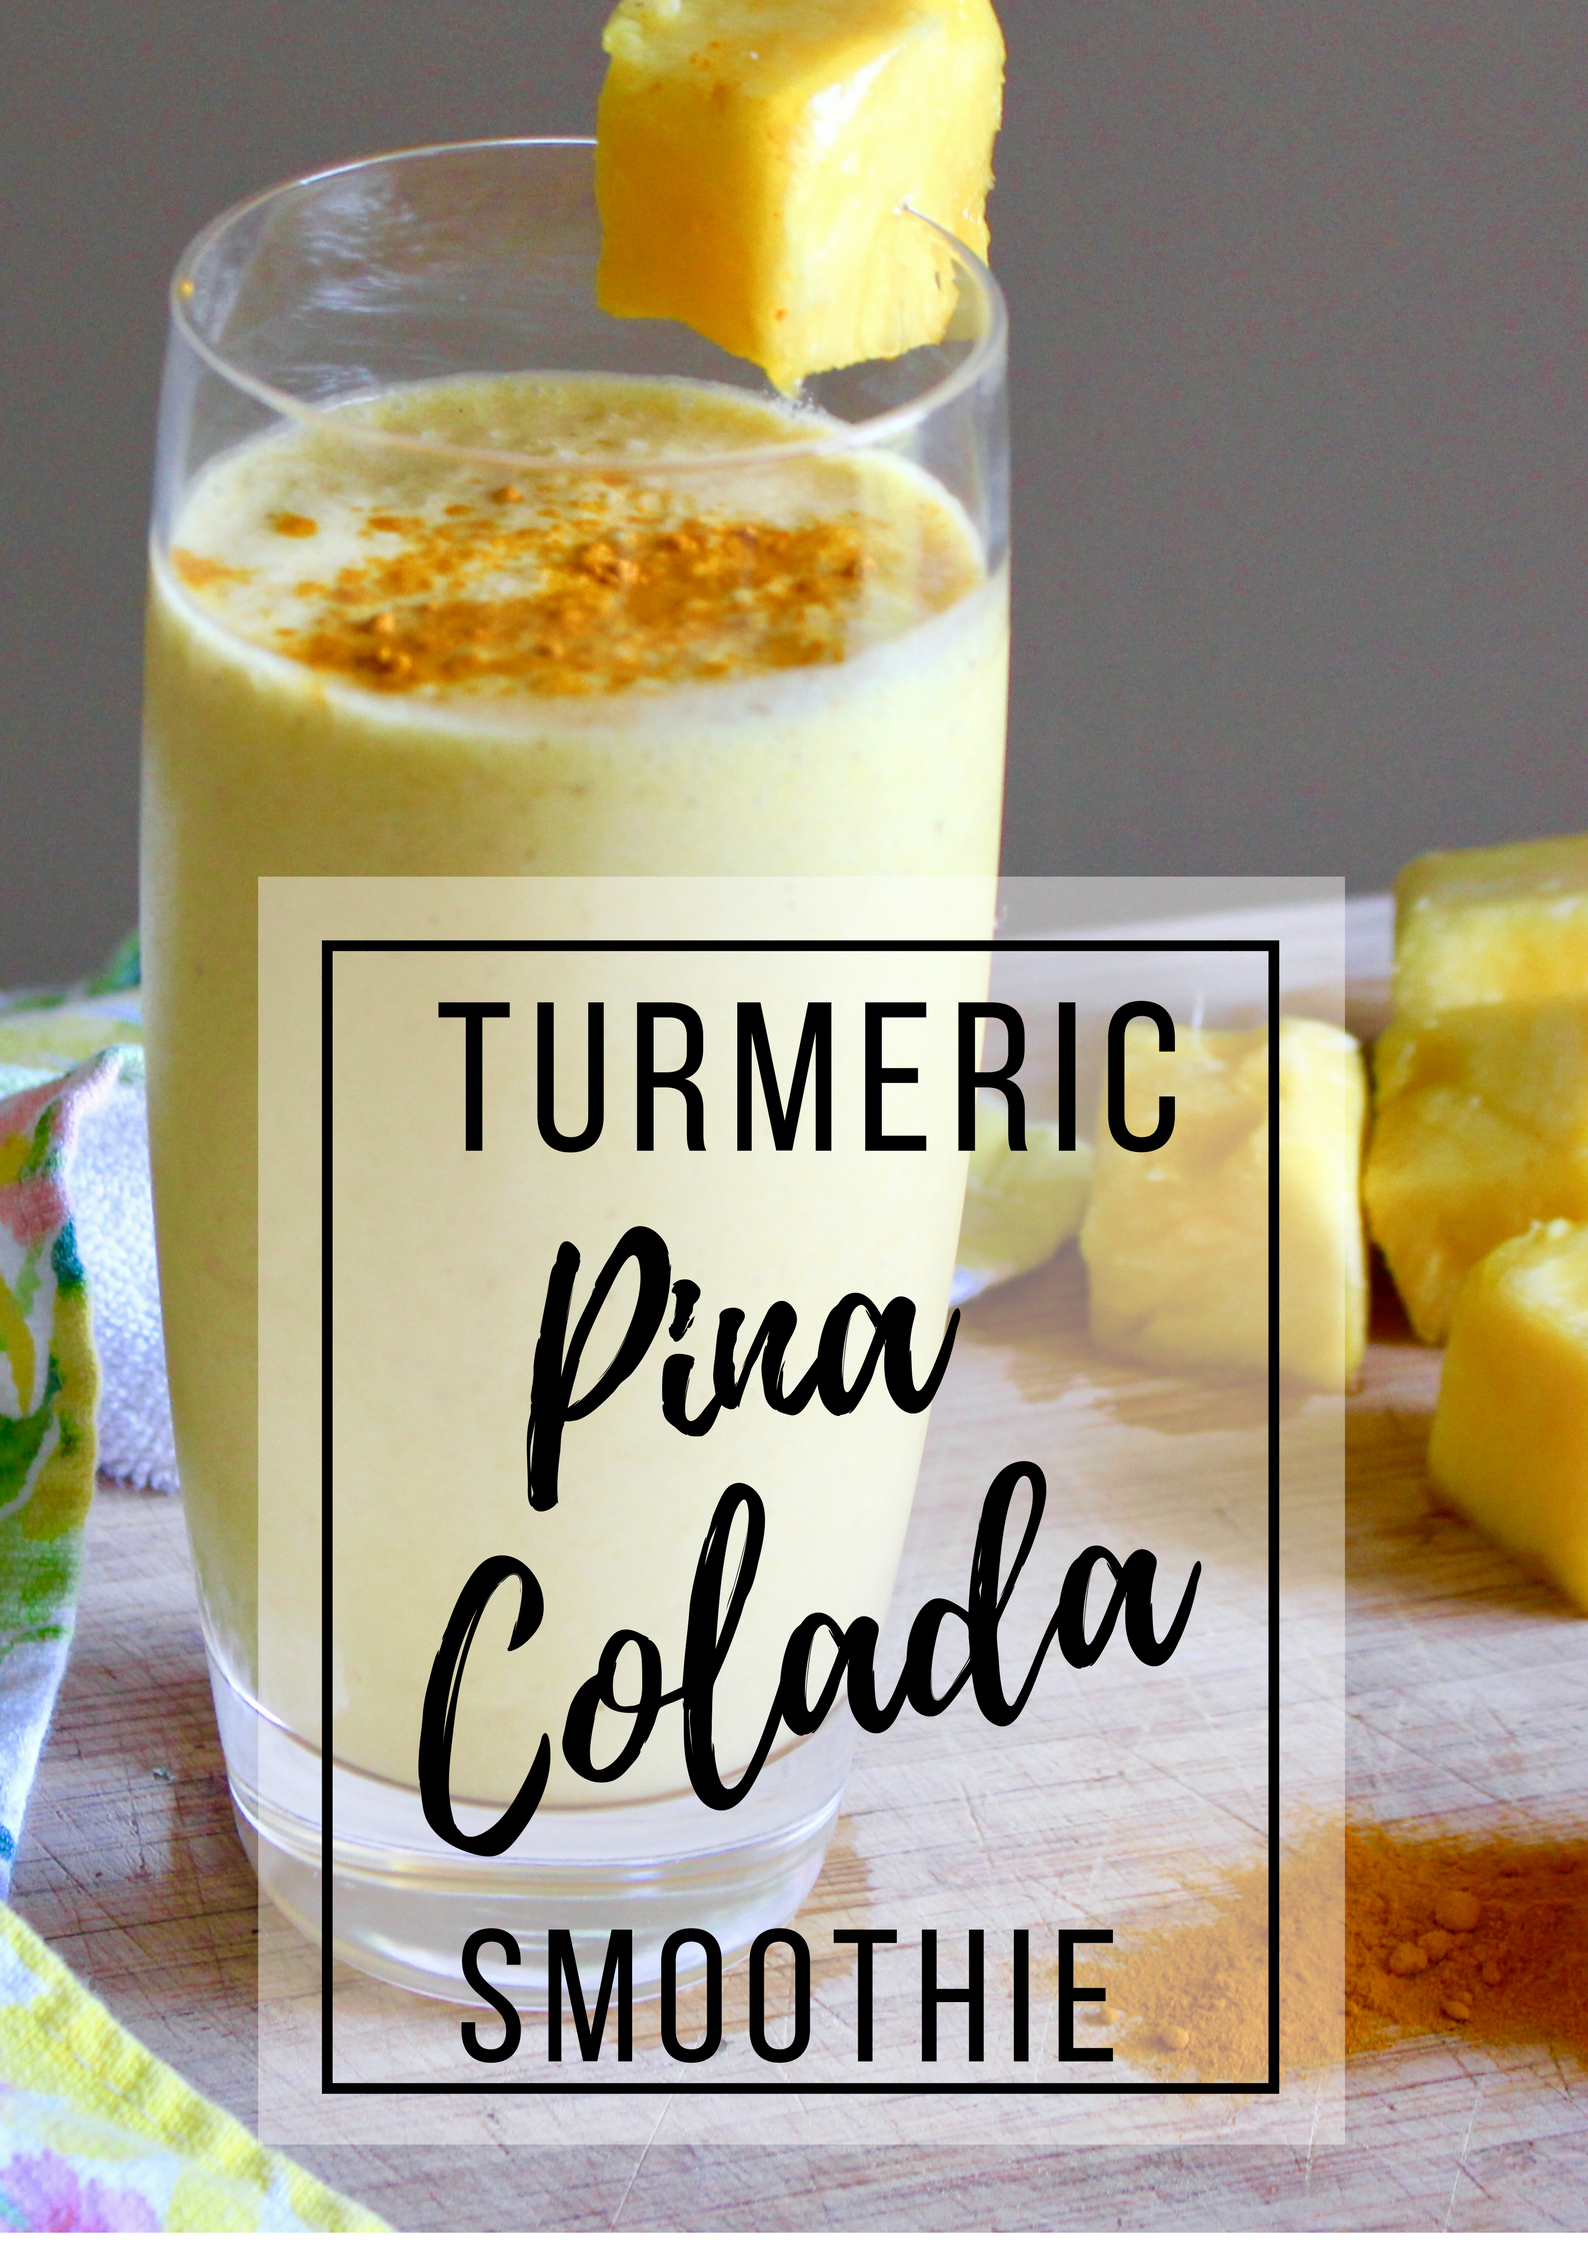 Turmeric pina colada smoothie for inflammation.jpg